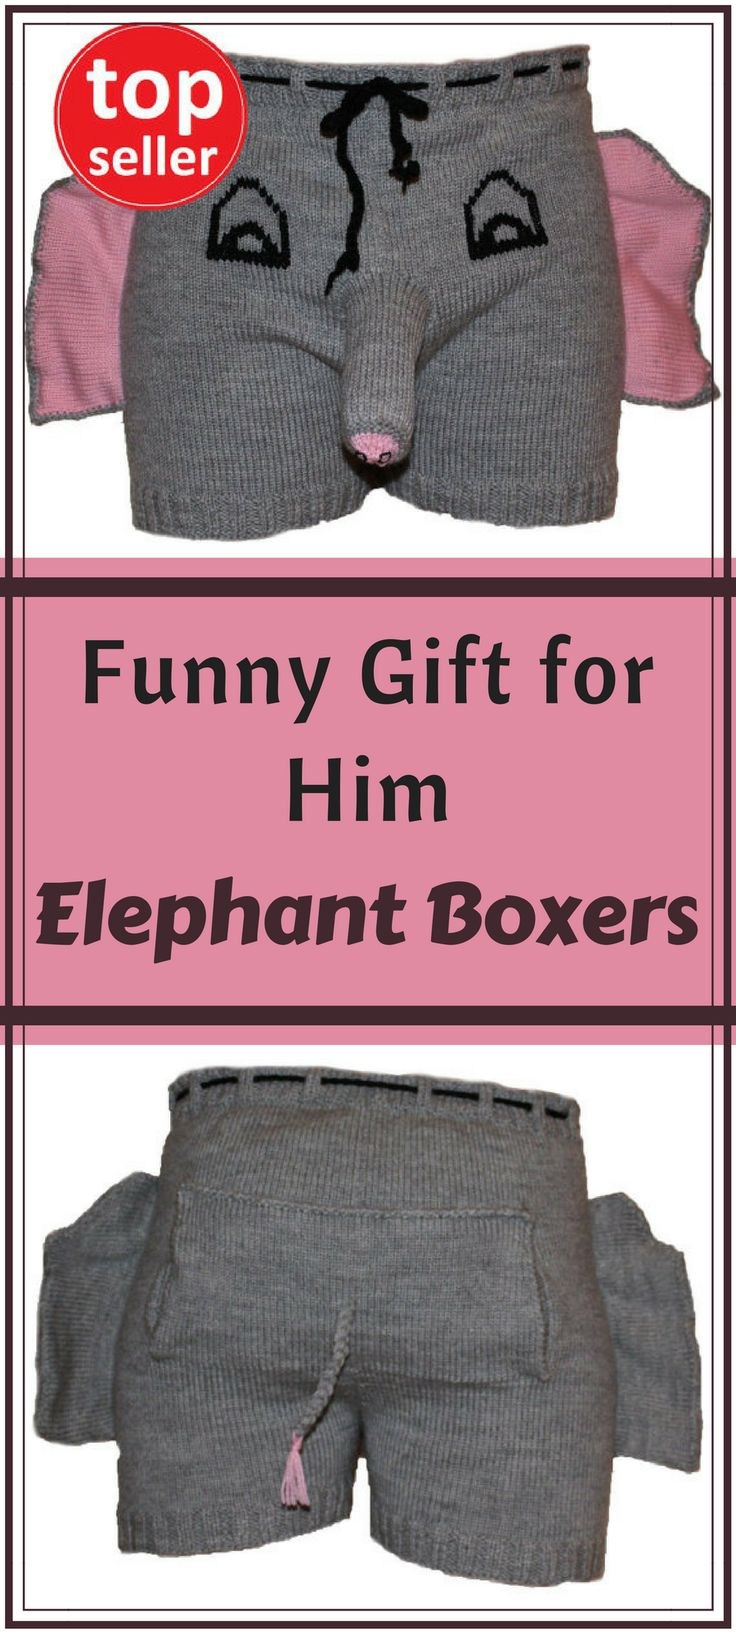 Funny gift for him - Valentines Day gift, Christmas gift, birthday, anniversary, honeymoon, bachelor or gag gift for your special someone! Elephant Boxers, Novelty Boxer Shorts Knitted Underwear Elephant Trunk Funny Humorous Sexy Romantic Gift for Men NNT #giftforhim #affiliate #funny #romantic #giftidea